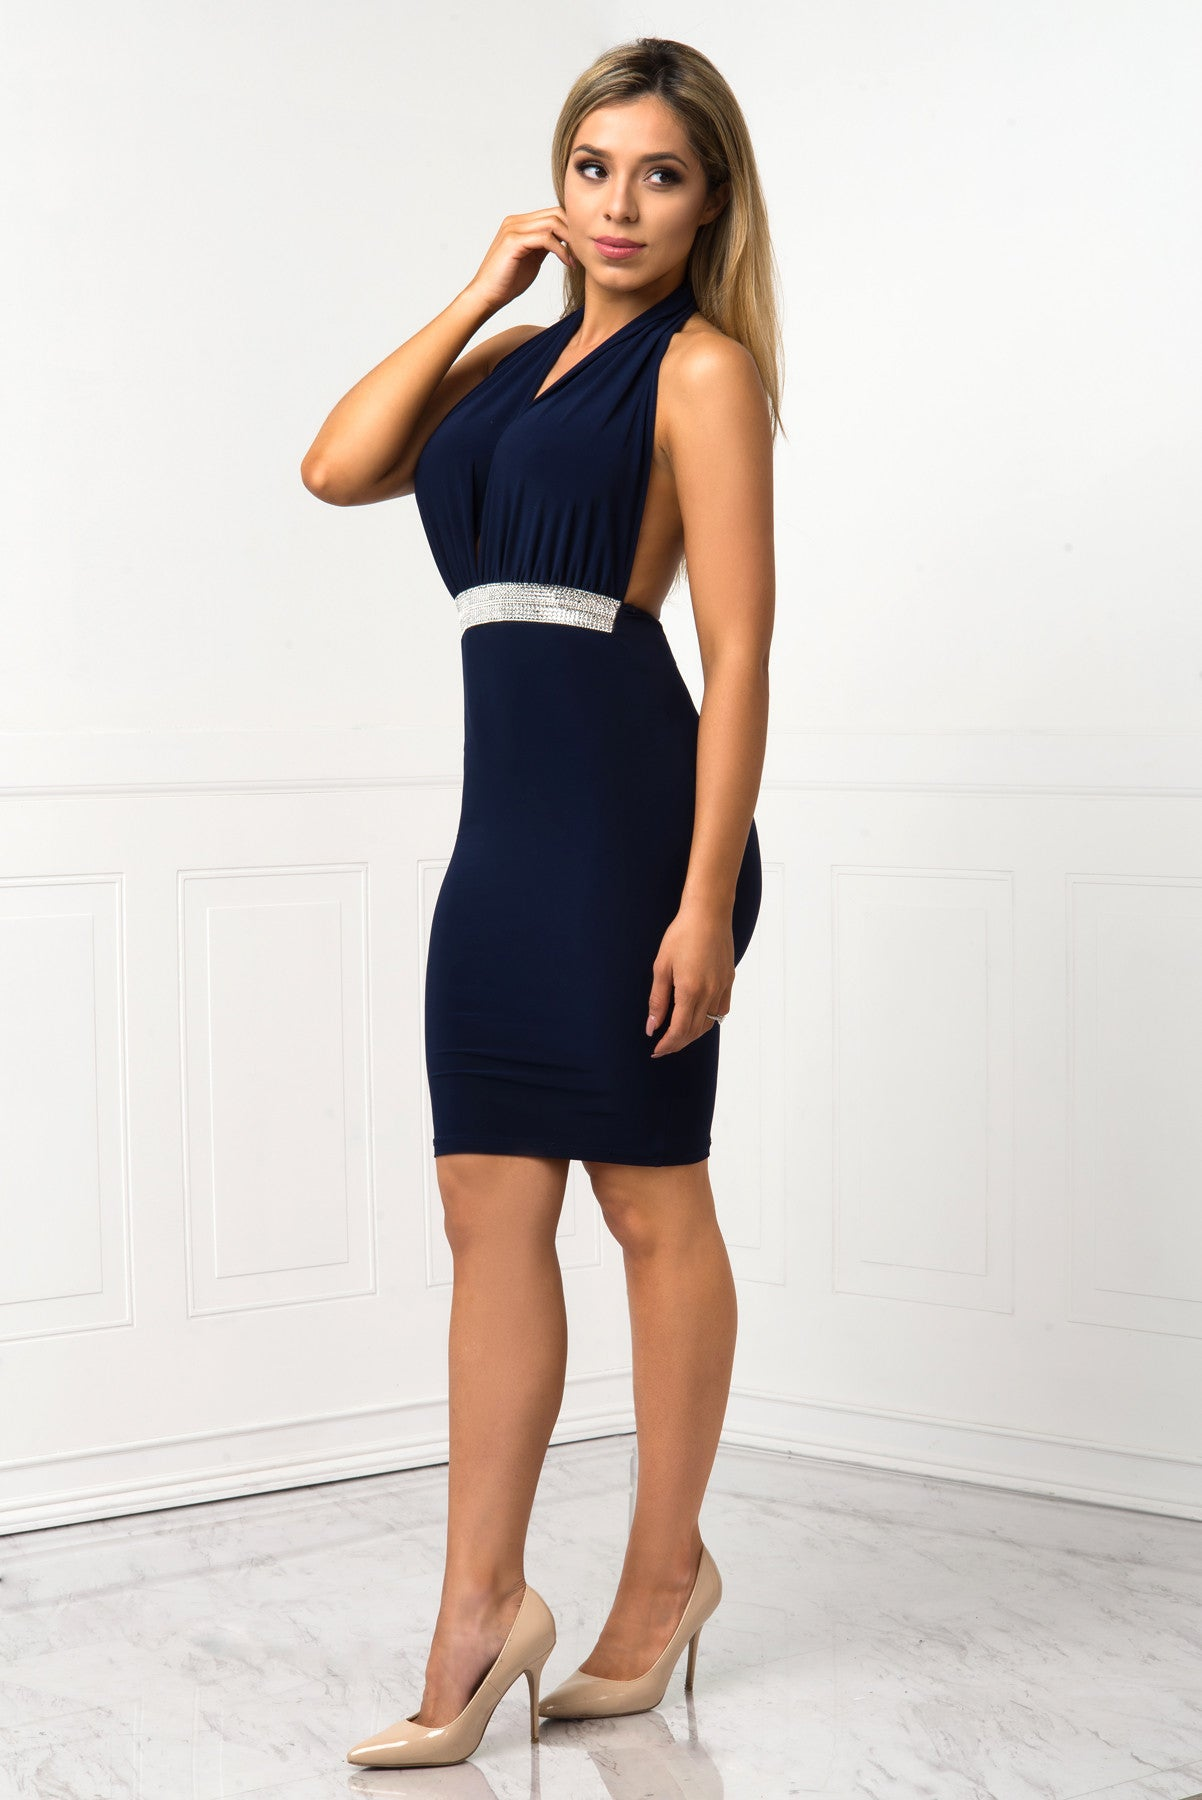 Jessa Navy Dress - Fashion Effect Store  - 2